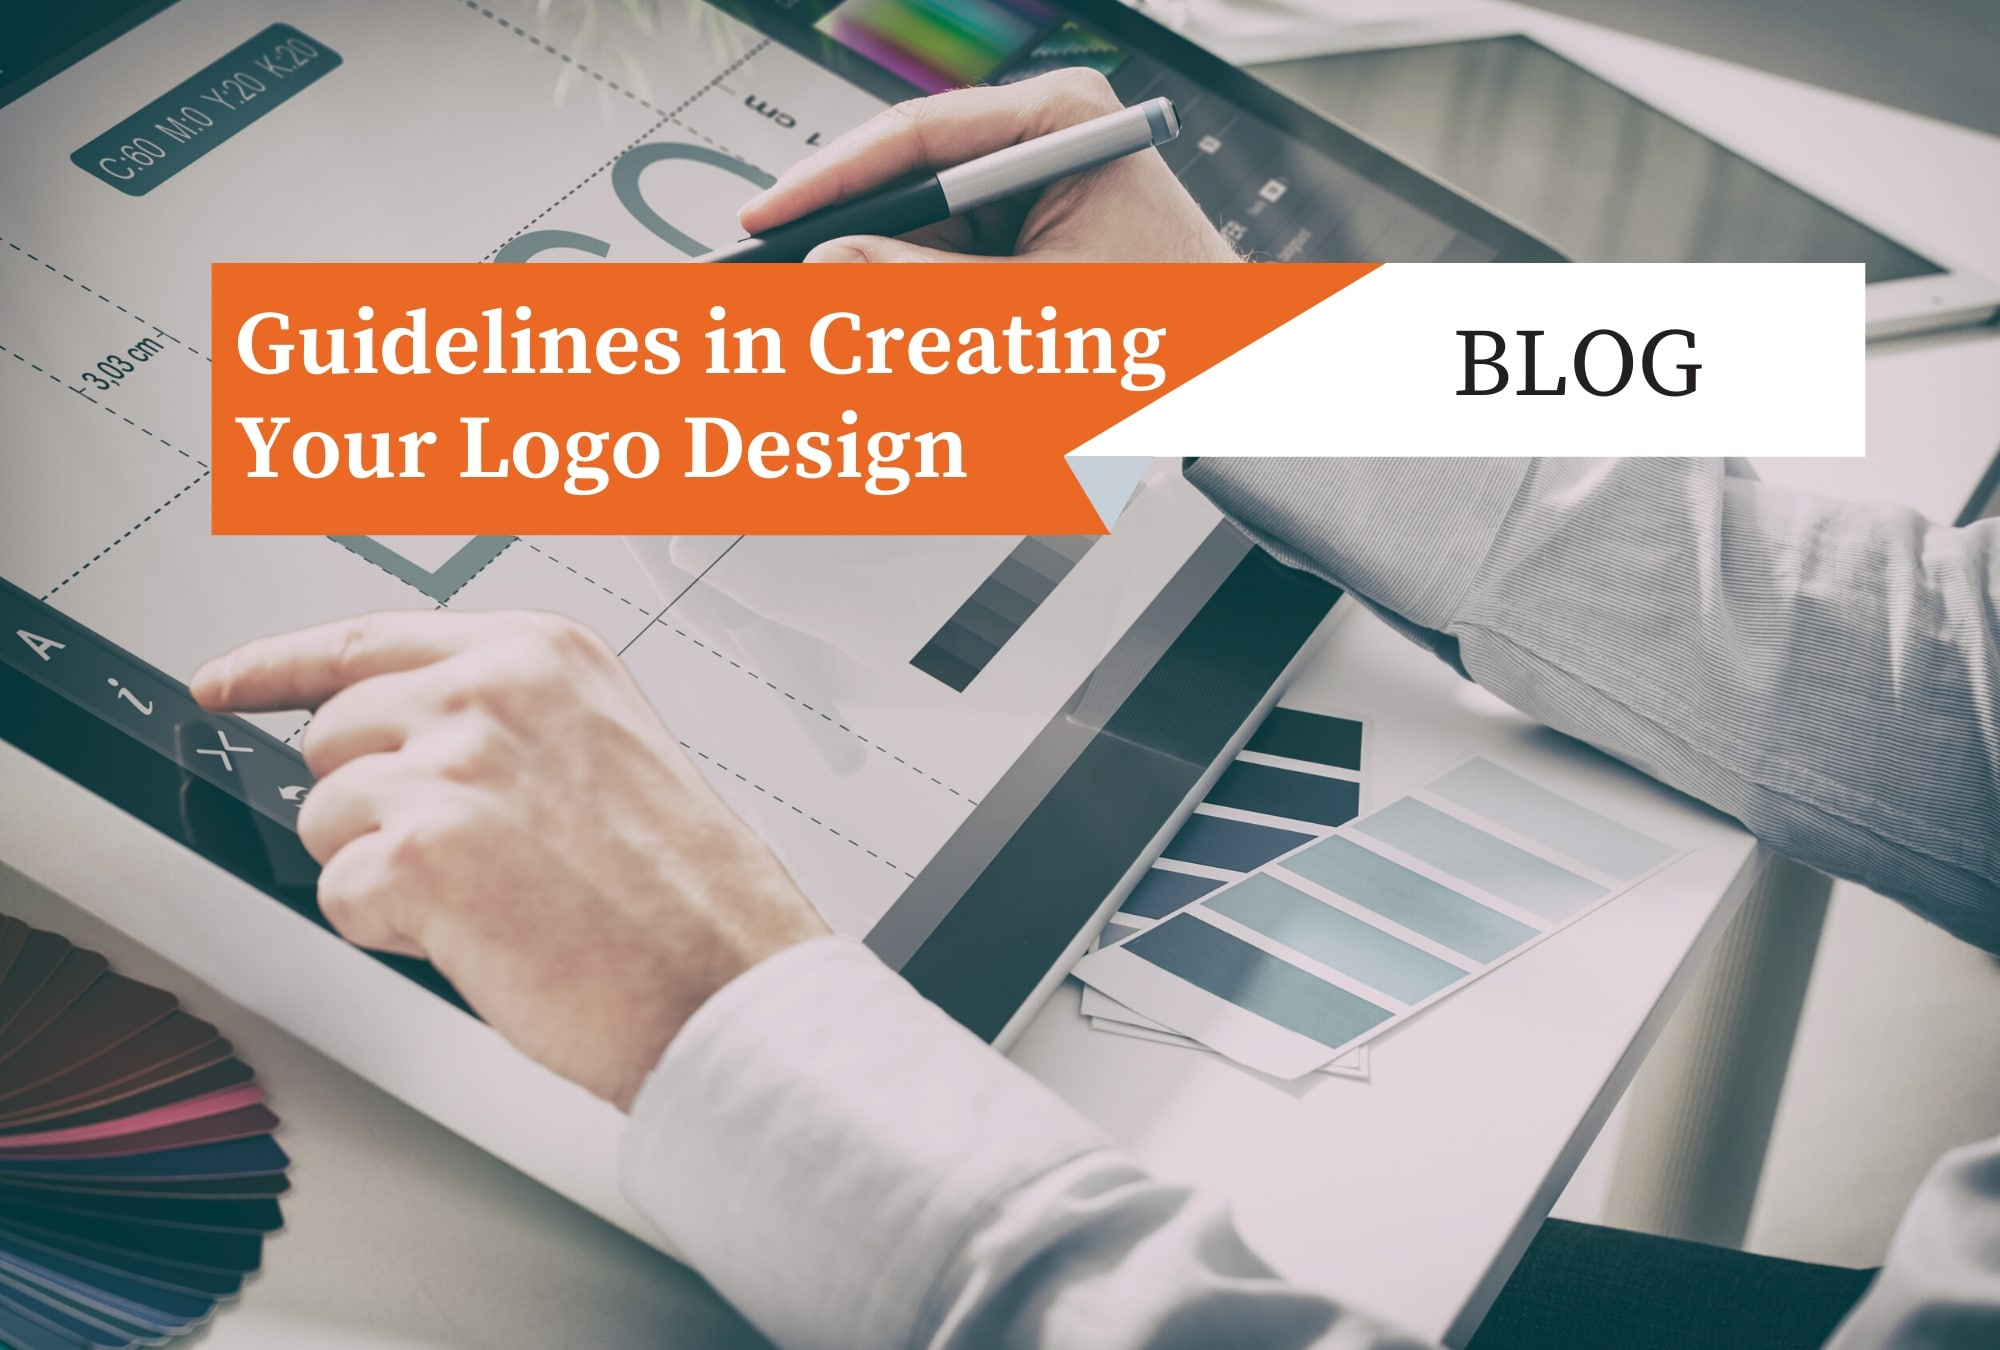 Guidelines in Creating Your Logo Design